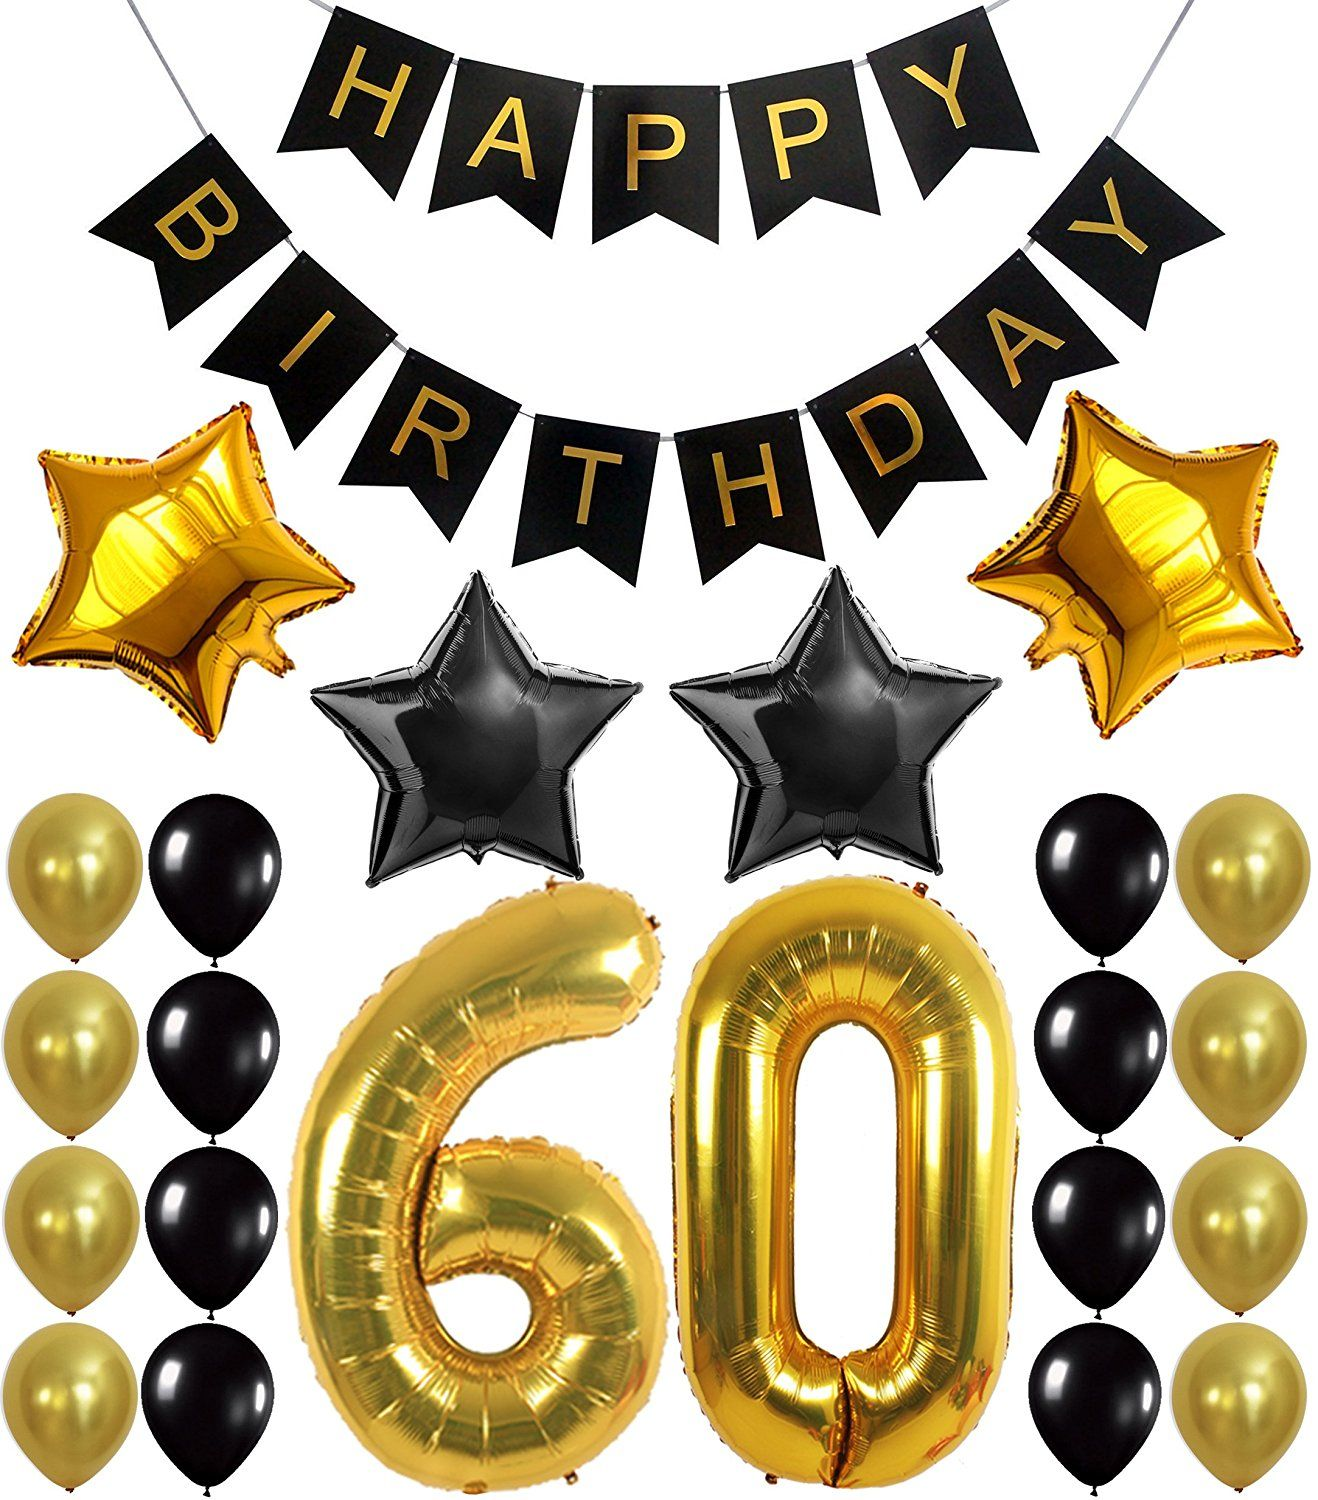 60th birthday party decorations kit happy for 60th birthday decoration